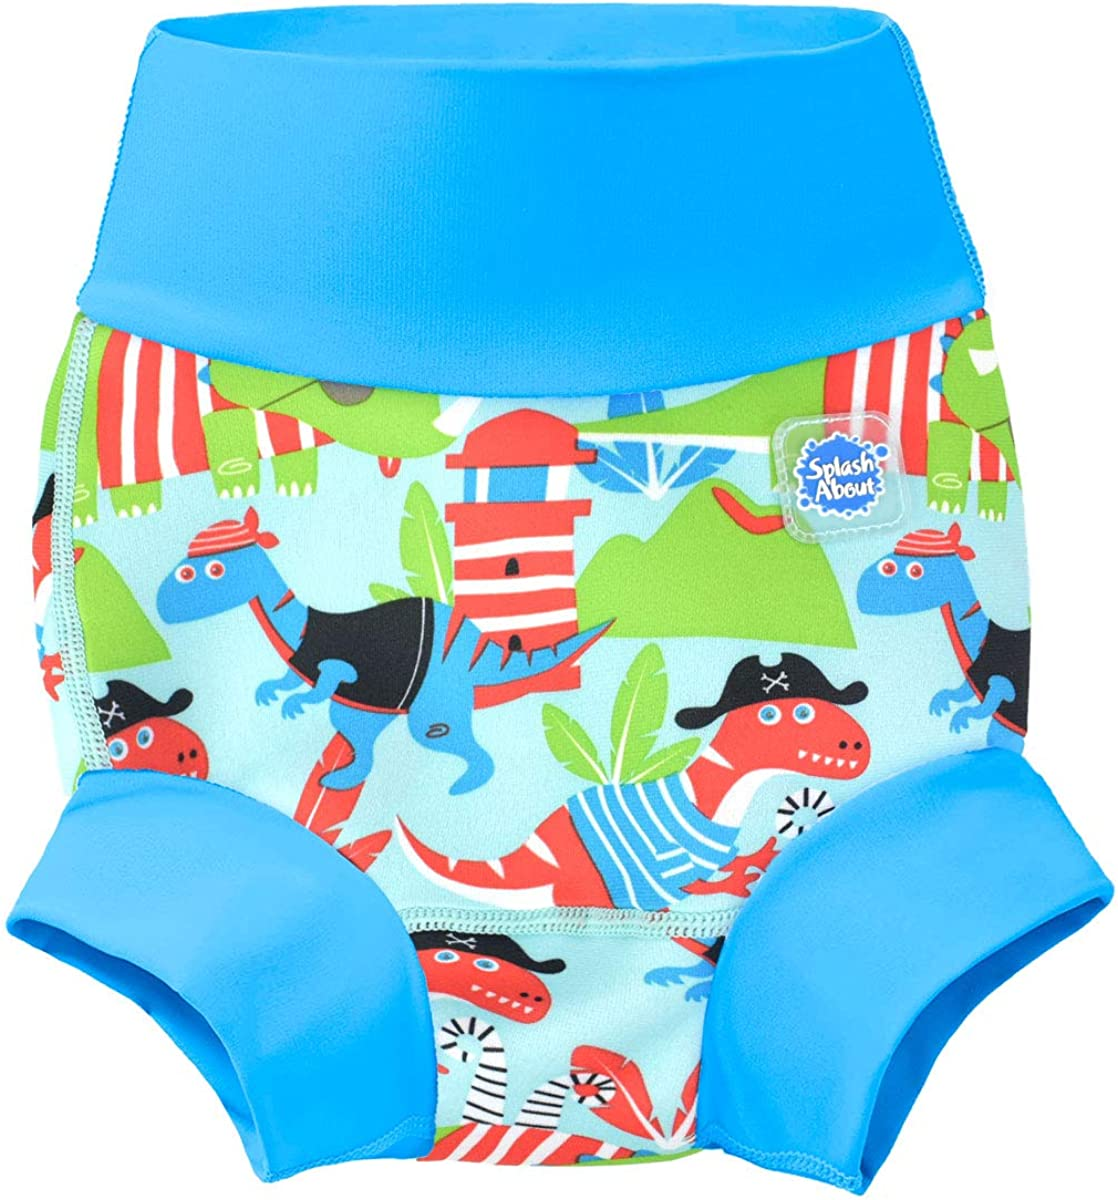 Splash About Baby Kids New Improved Happy Nappy,Multicoloured Dino Pirates ,3-6 months